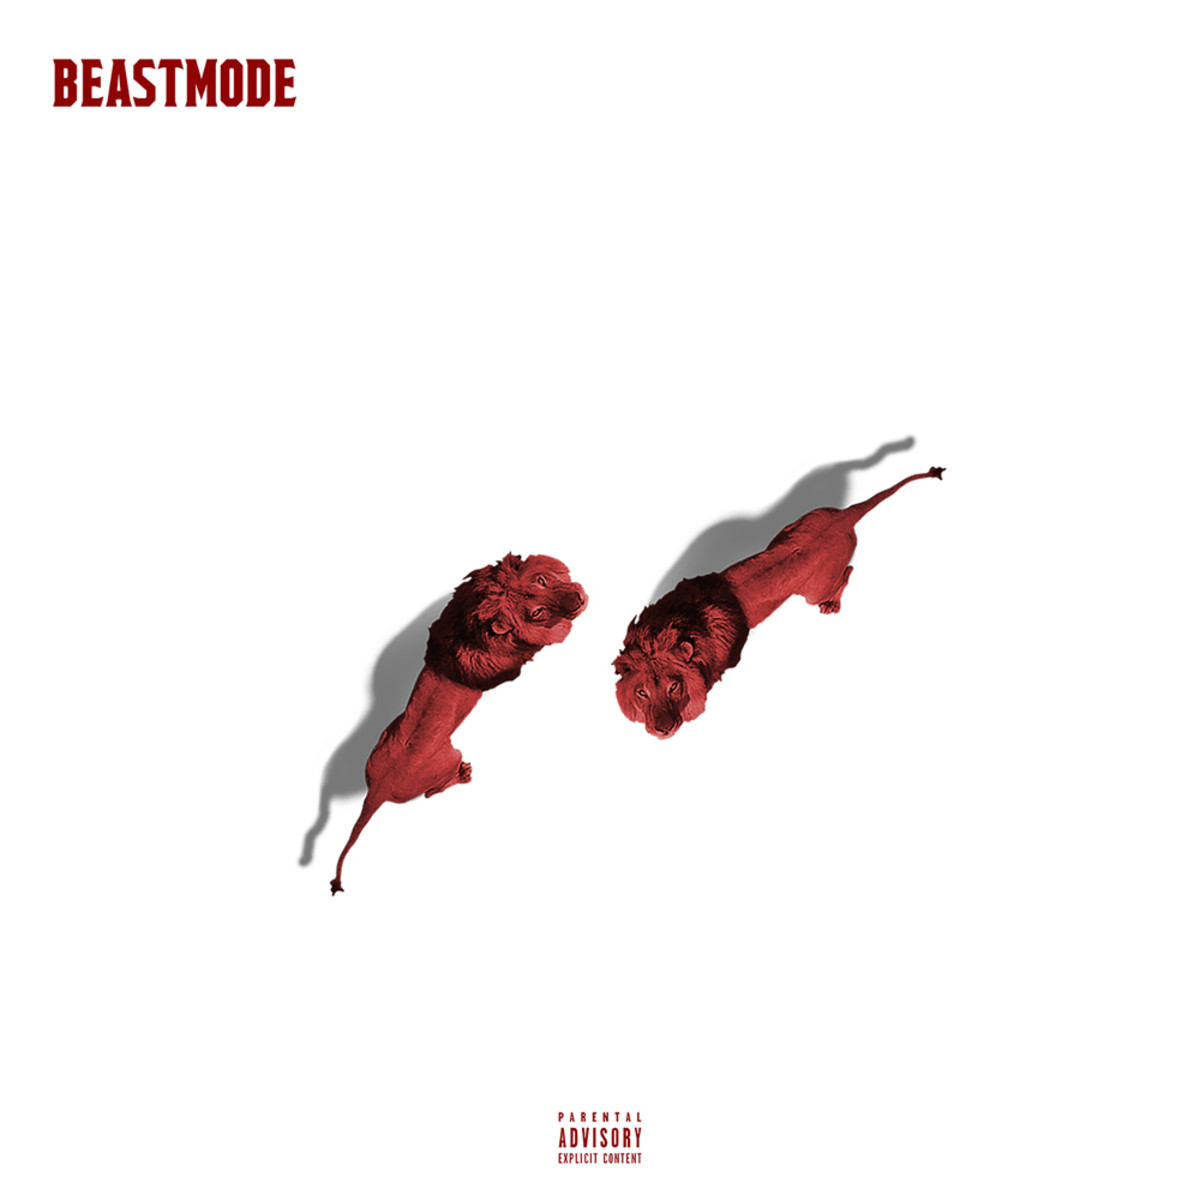 future-beastmode-2-album-art